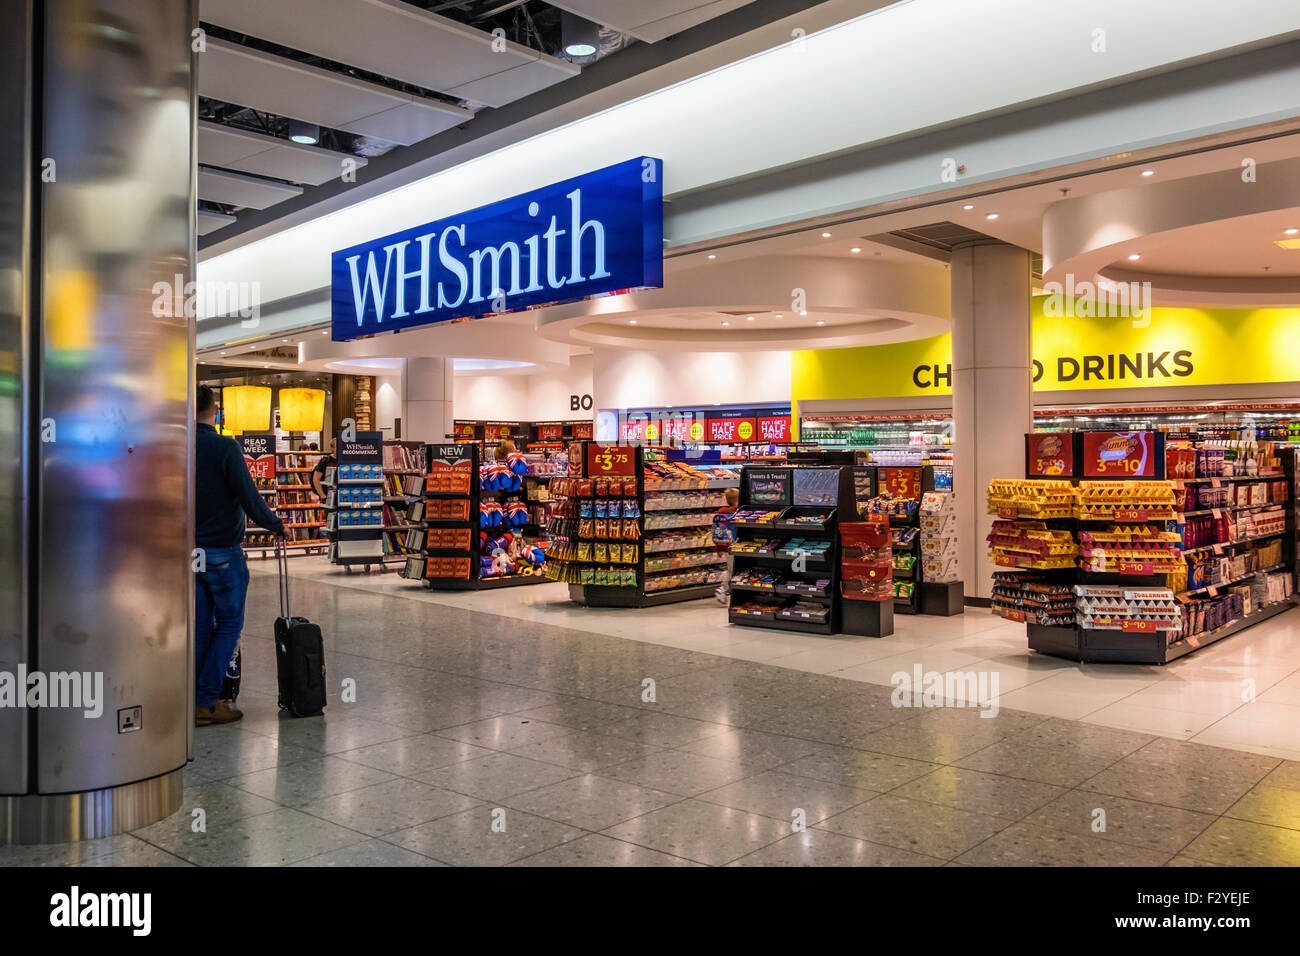 London Heathrow Airport Terminal 2, Queen Elizabeth Terminal T2, W H Smith bookshop in the Departures Hall - Stock Image